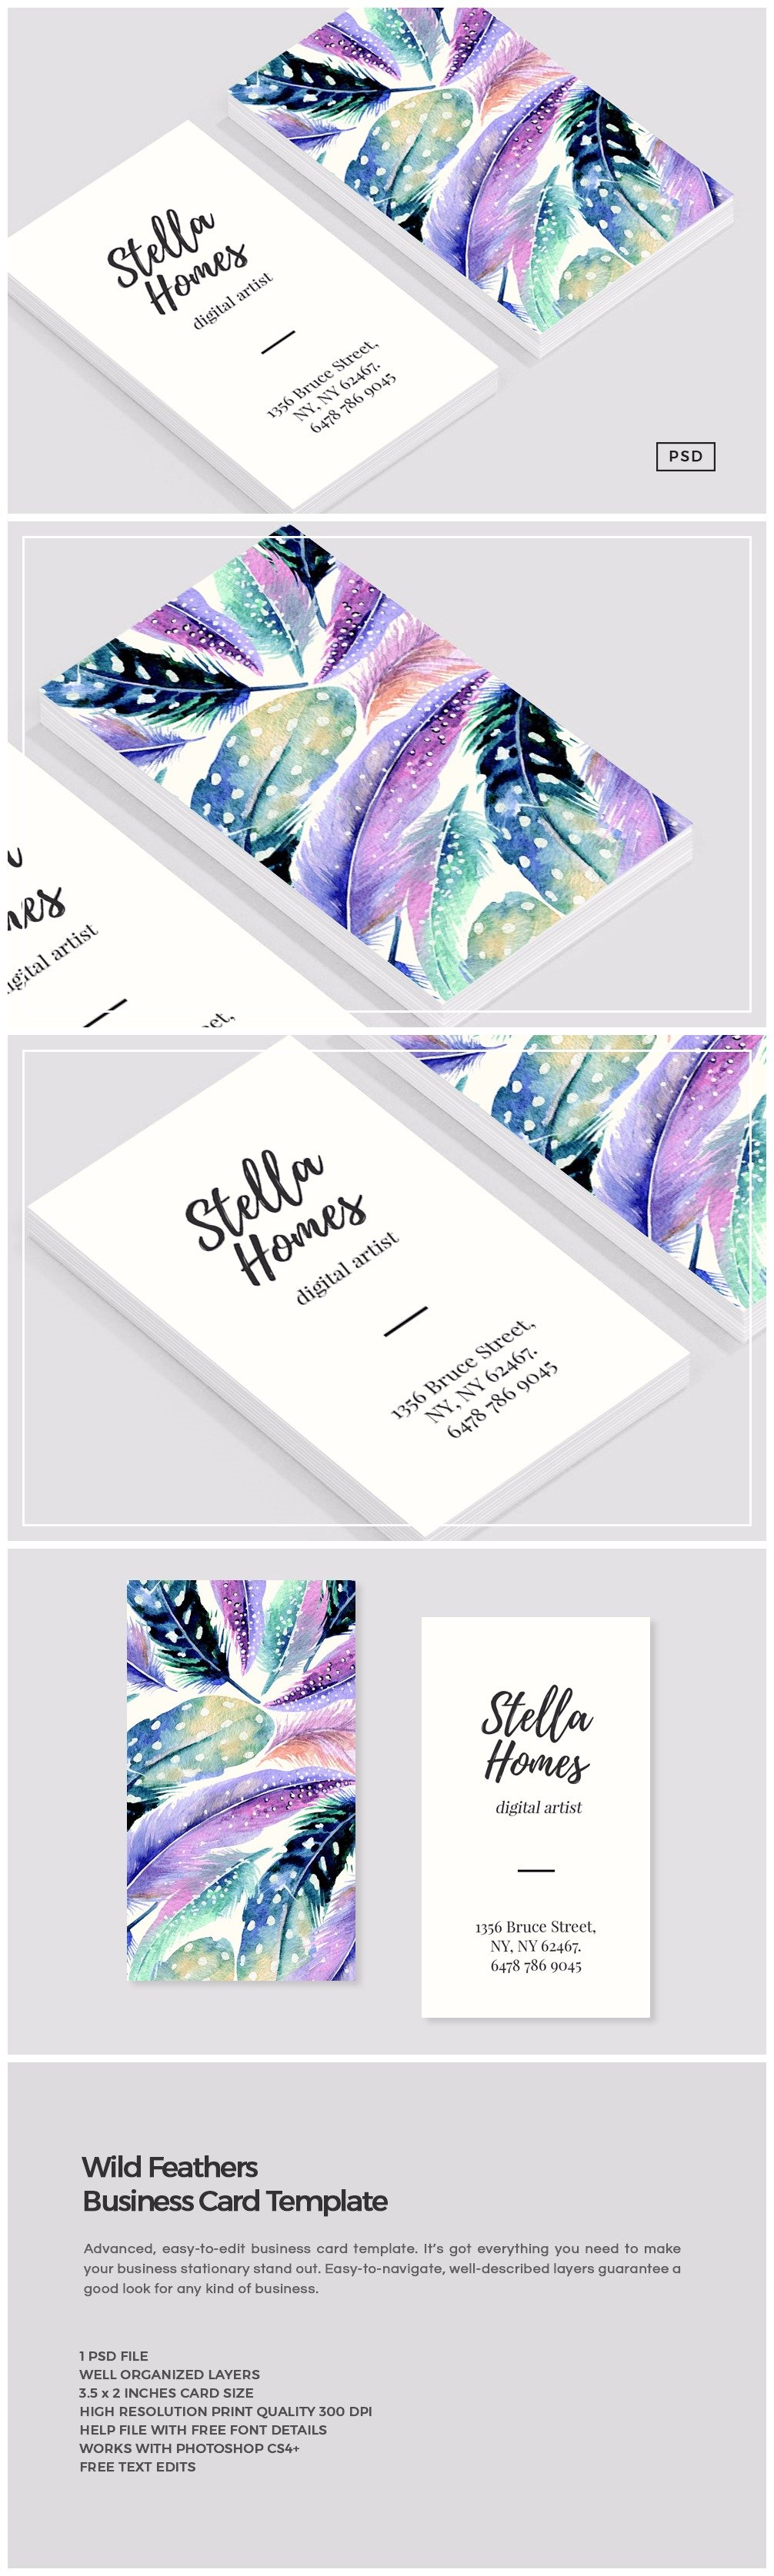 Wild feathers business card template business card templates wild feathers business card template business card templates creative market wajeb